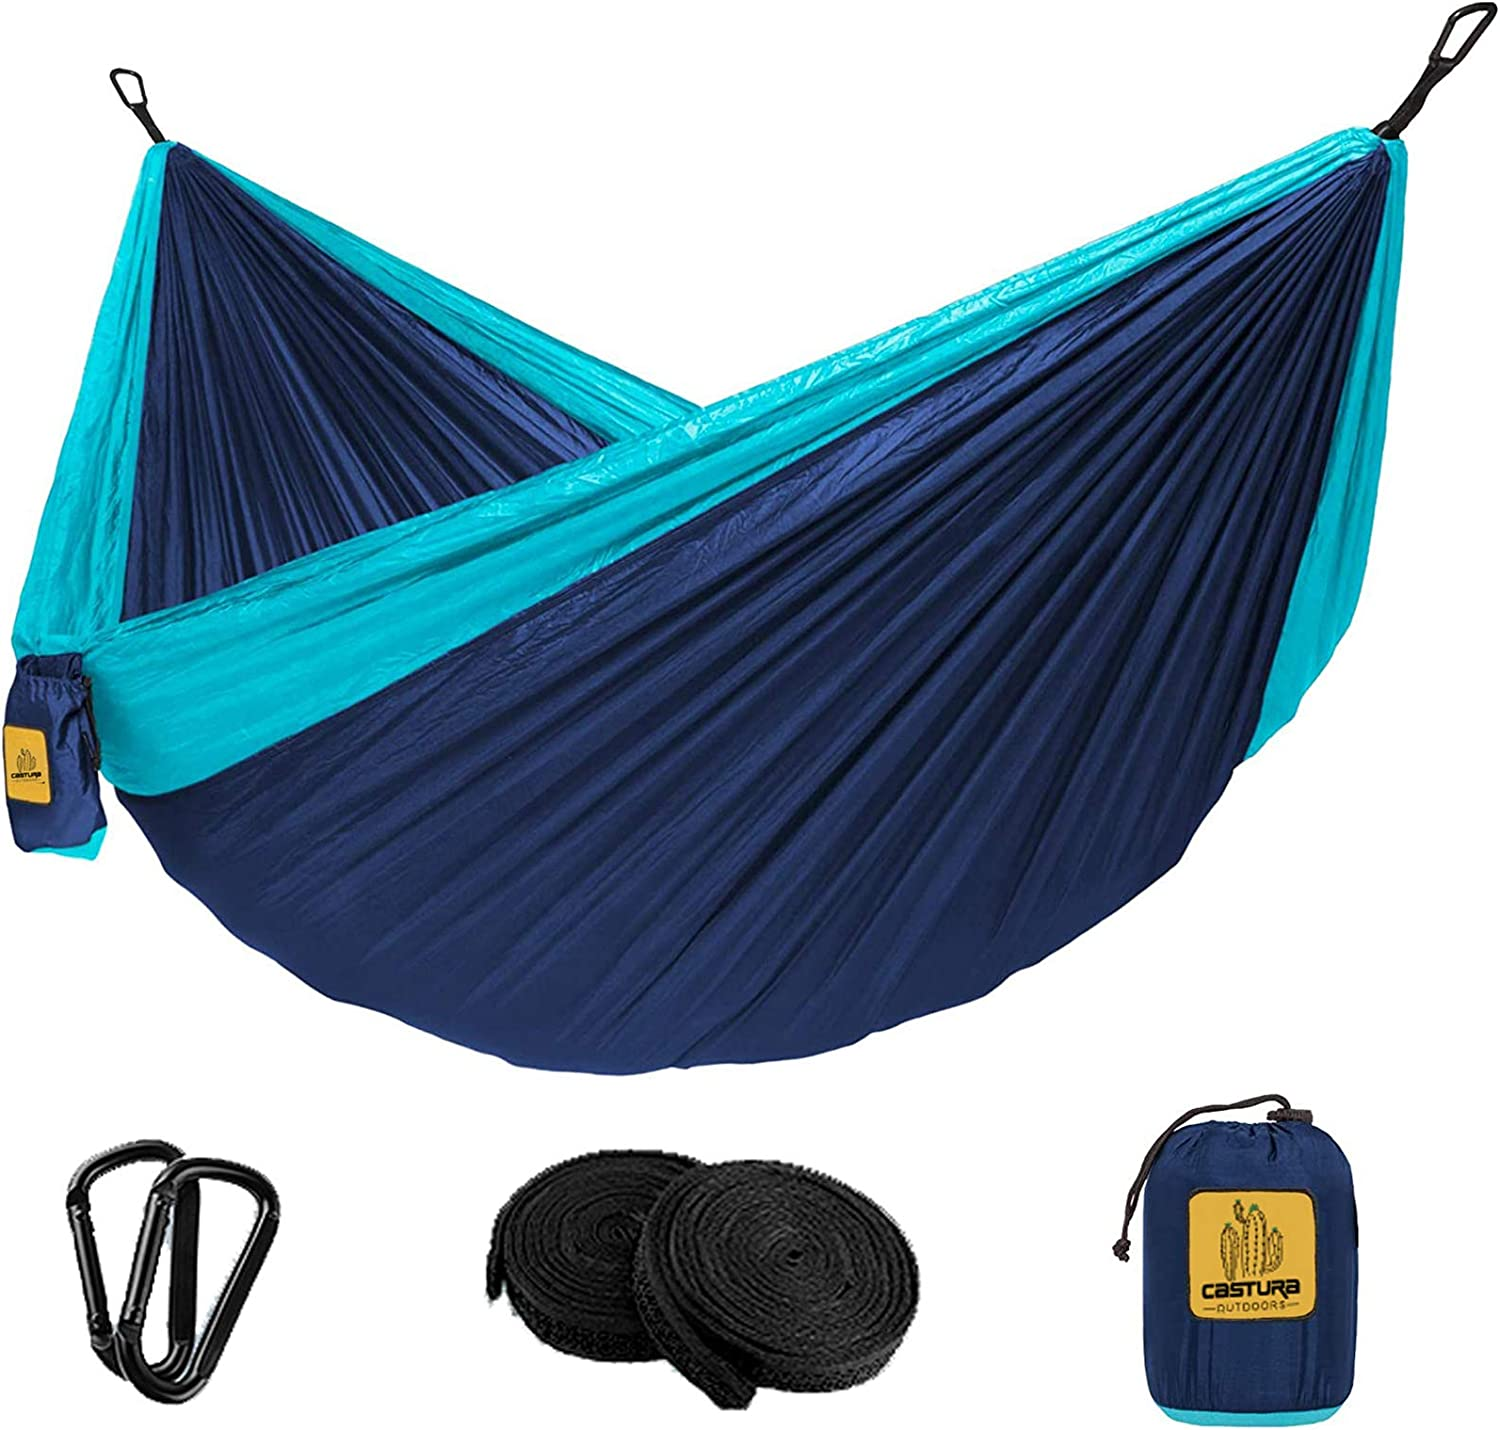 Castura Camping Hammock Double /& Single with Tree Straps,Portable Hammocks for Indoor Outdoor Backpacking Survival Travel Beach Hiking